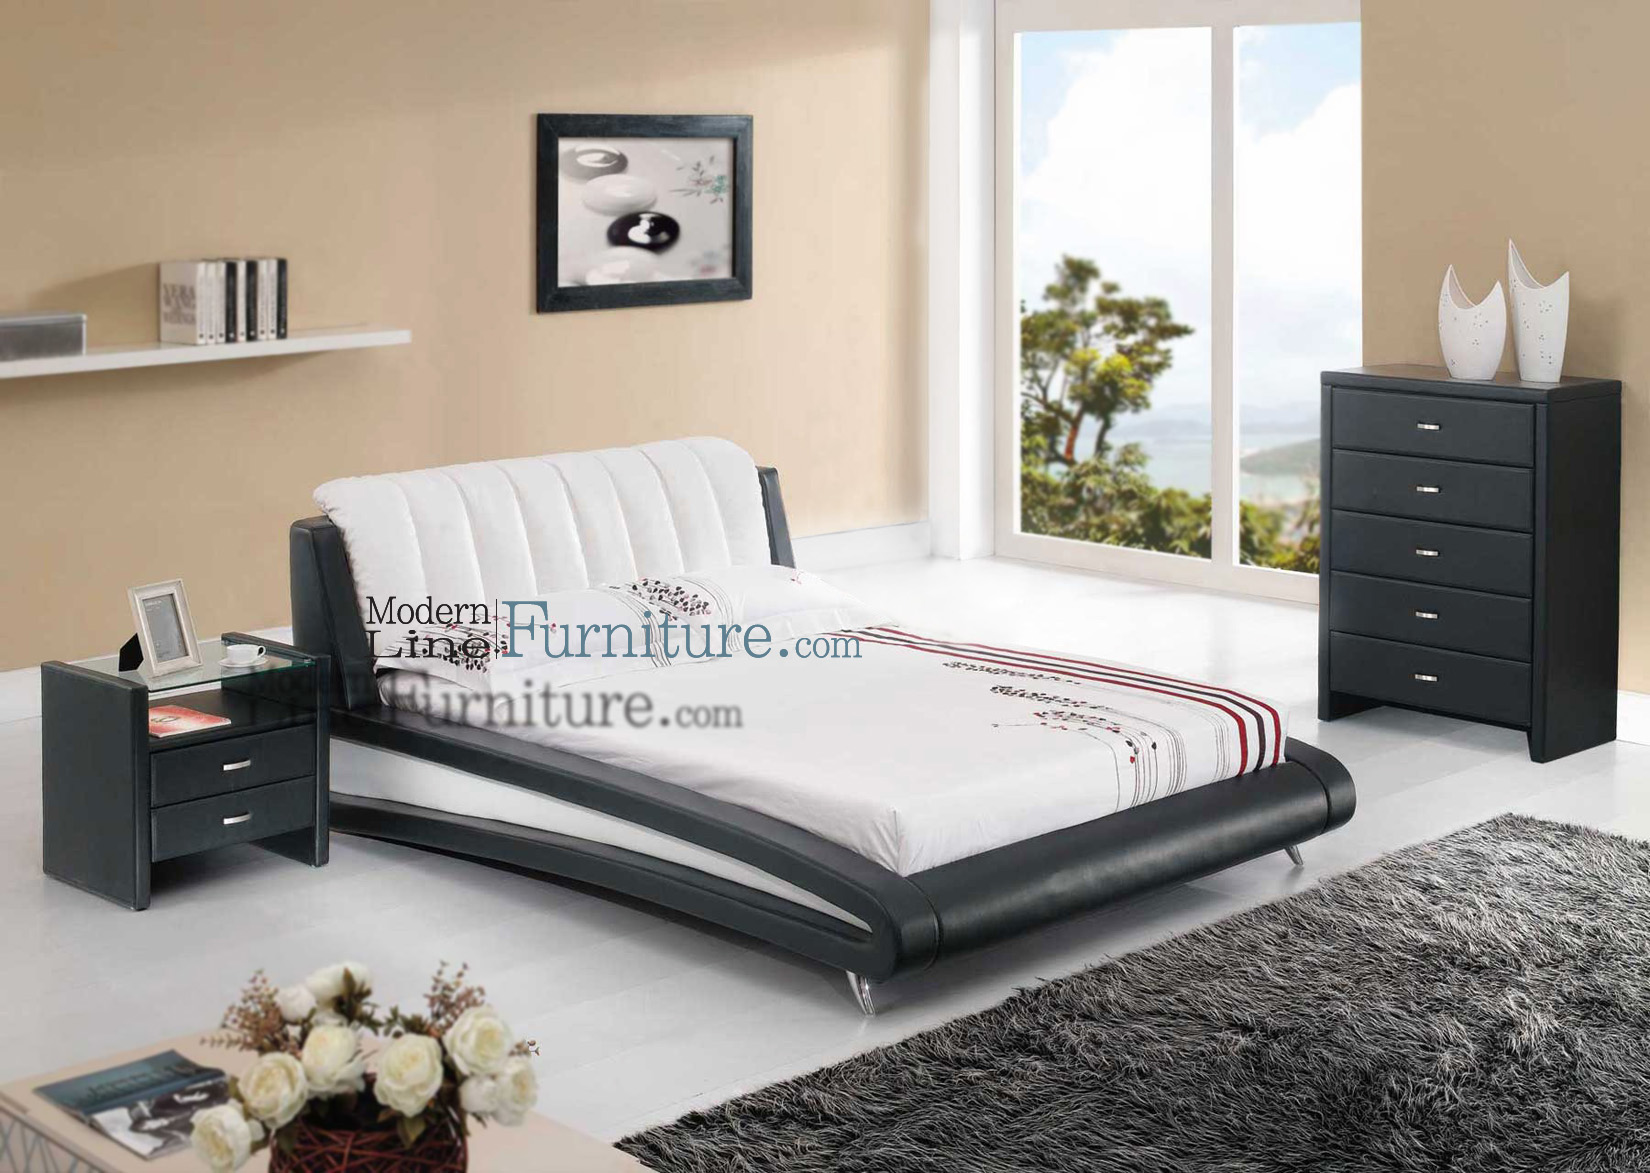 sleek modern full size bedroom set sleek modern full size bedroom set